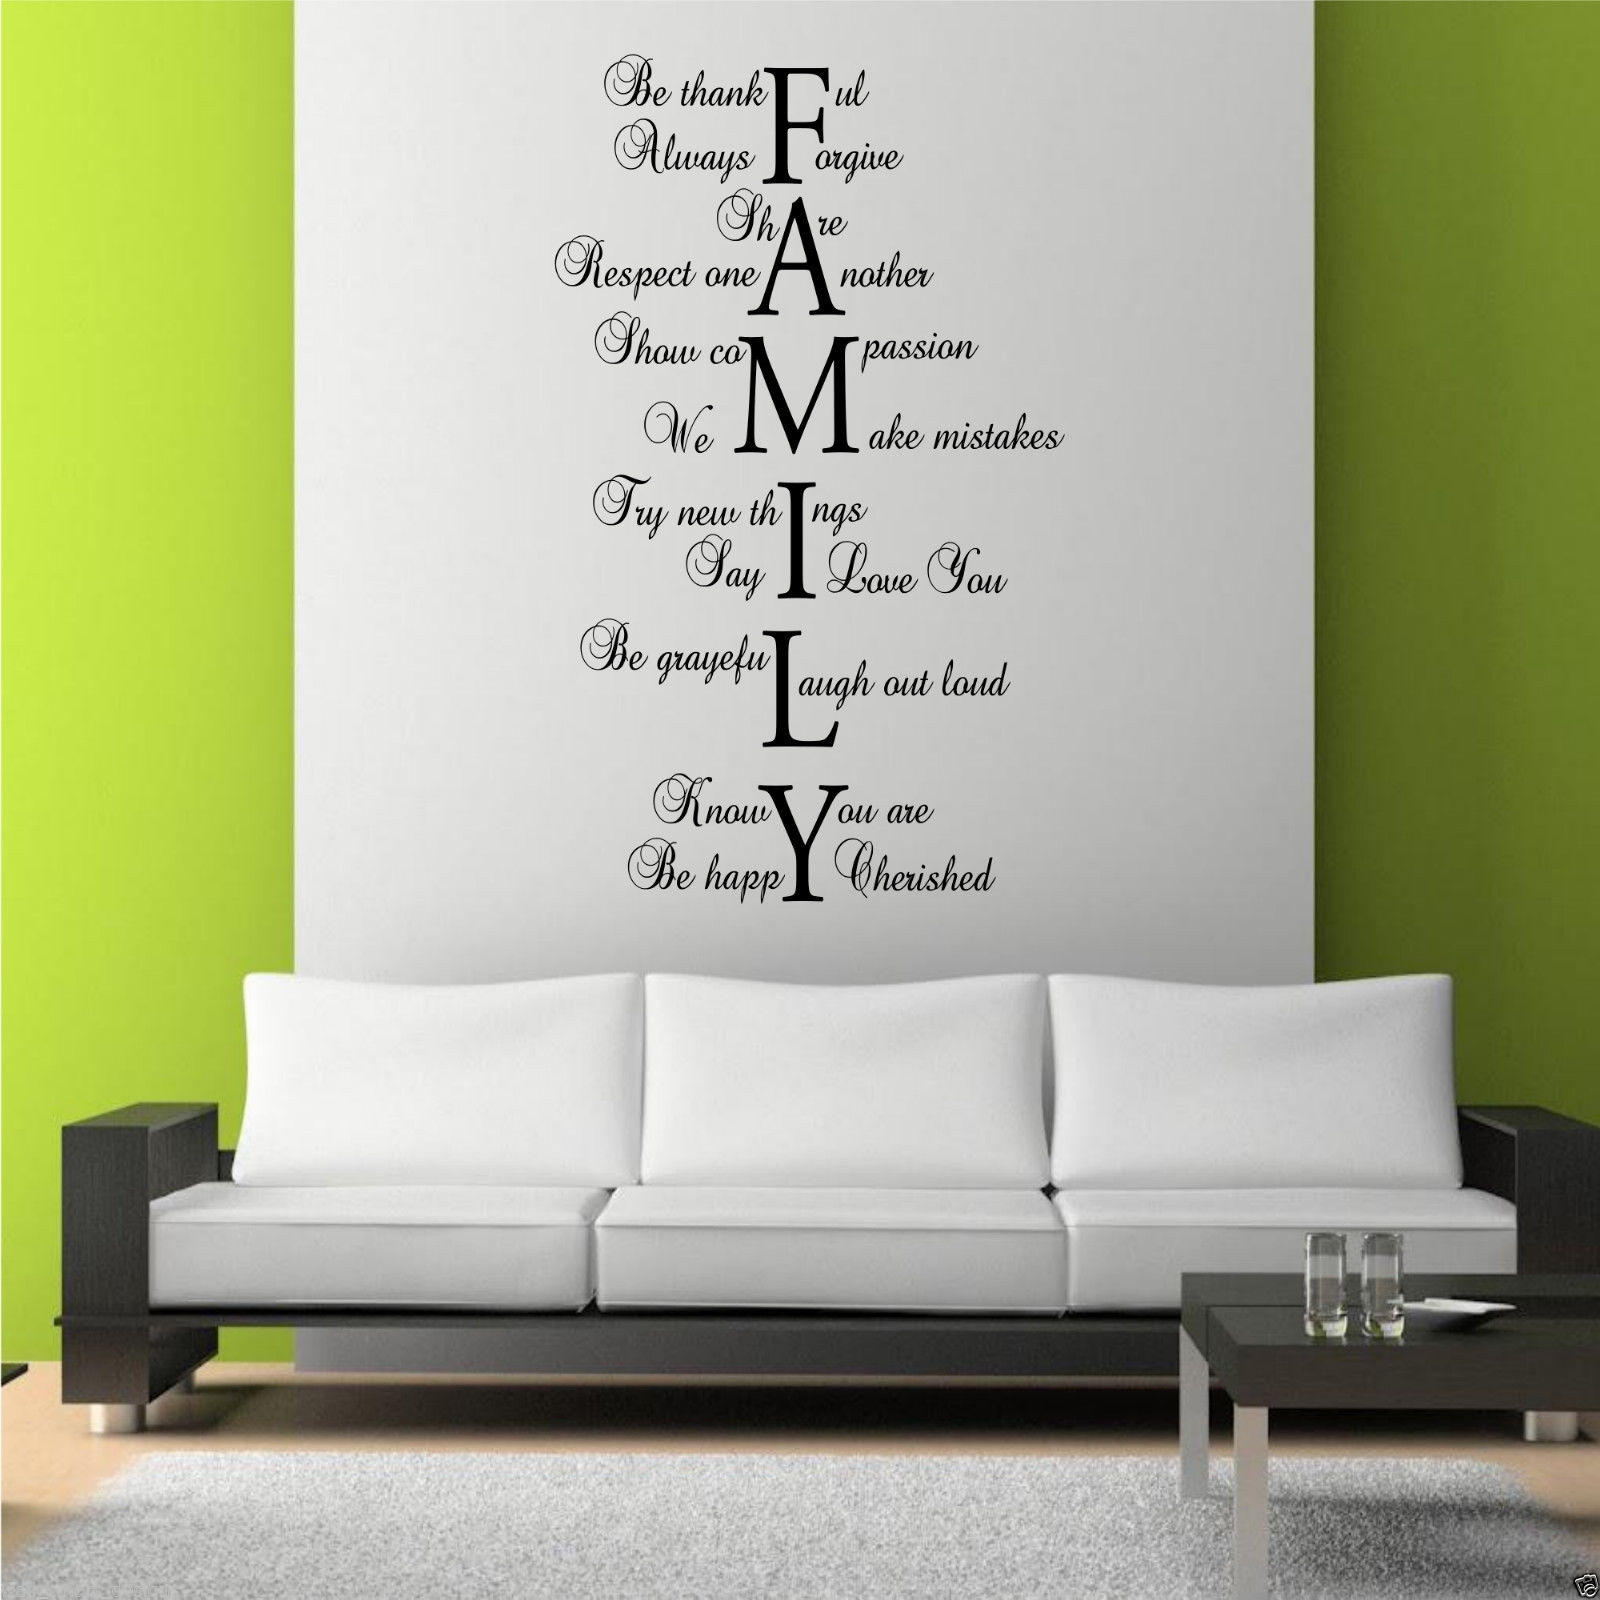 Family Love Life Wall Art Sticker Quote Room Decal Mural Transfer pertaining to Recent Wall Sticker Art